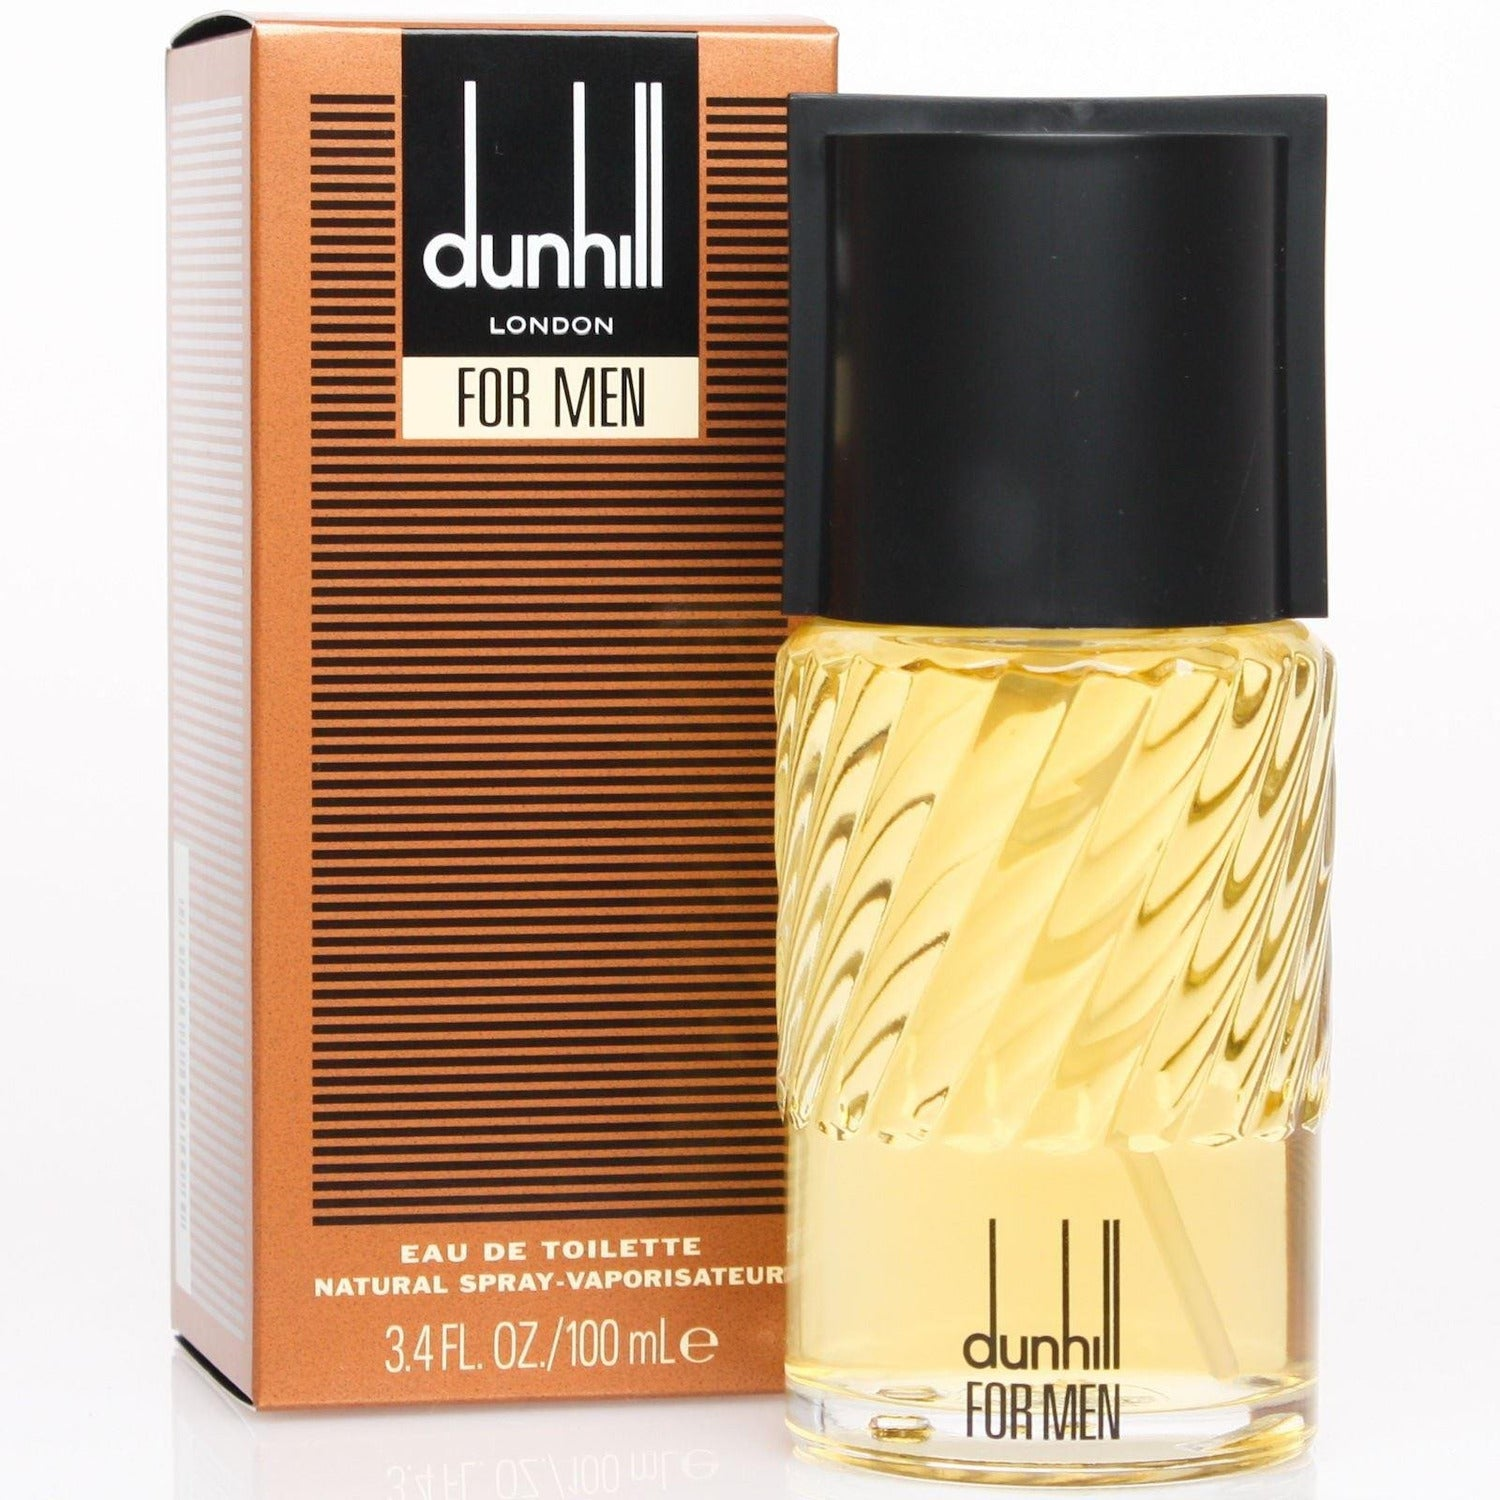 dunhill-for-men-alfred-dunhill-edt-cologne-spray-3-4-oz-3-3-new-in-box